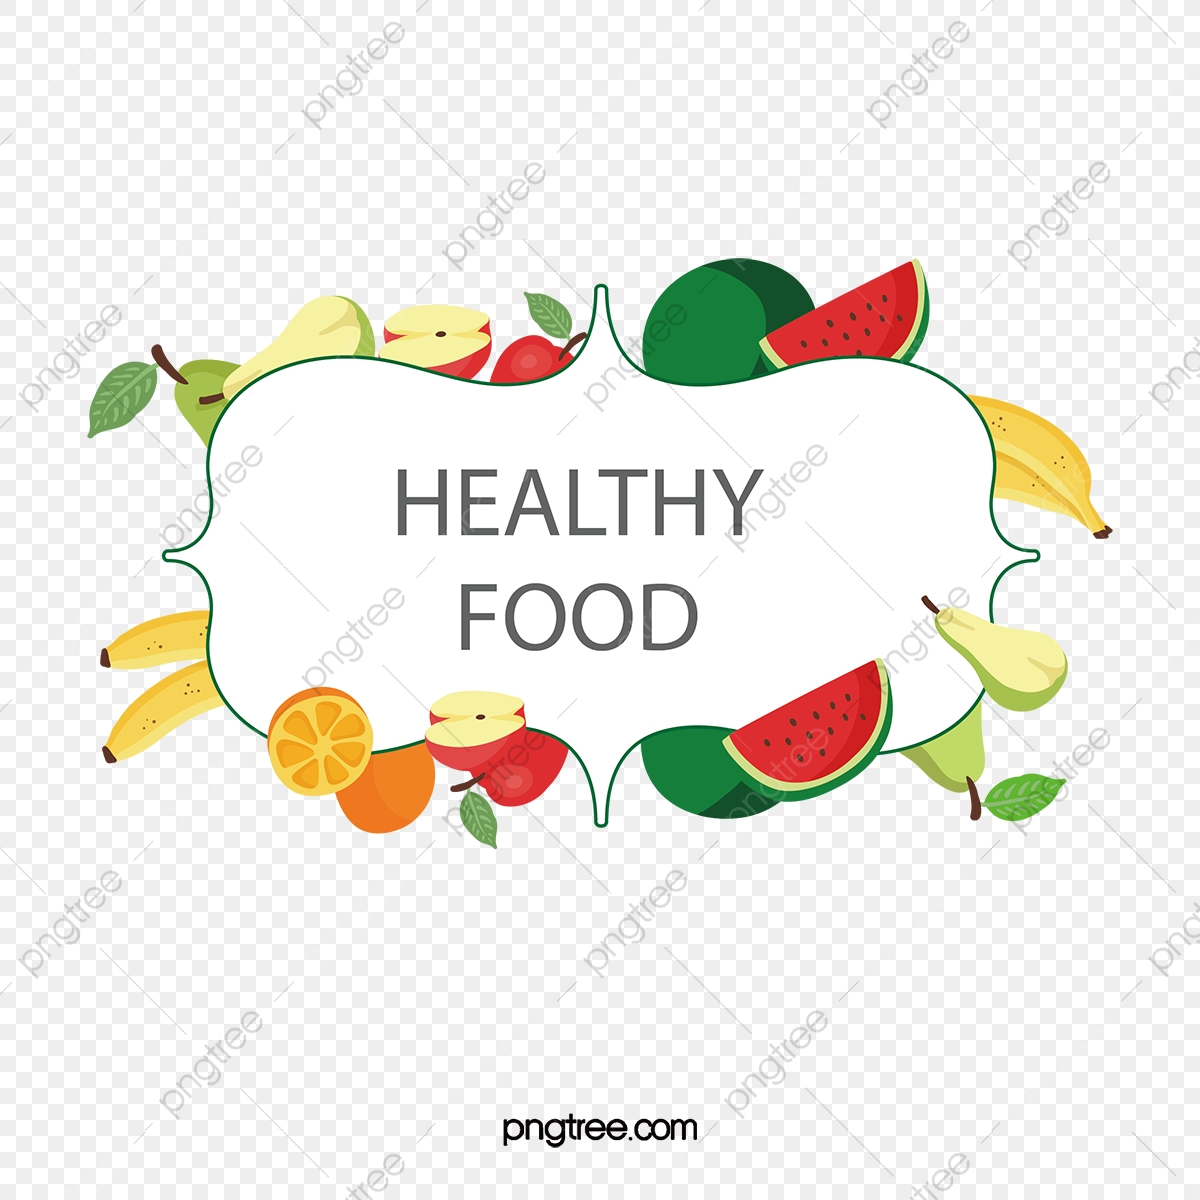 Healthy Food Food Clipart Nutritious Food Png And Vector With Transparent Background For Free Download